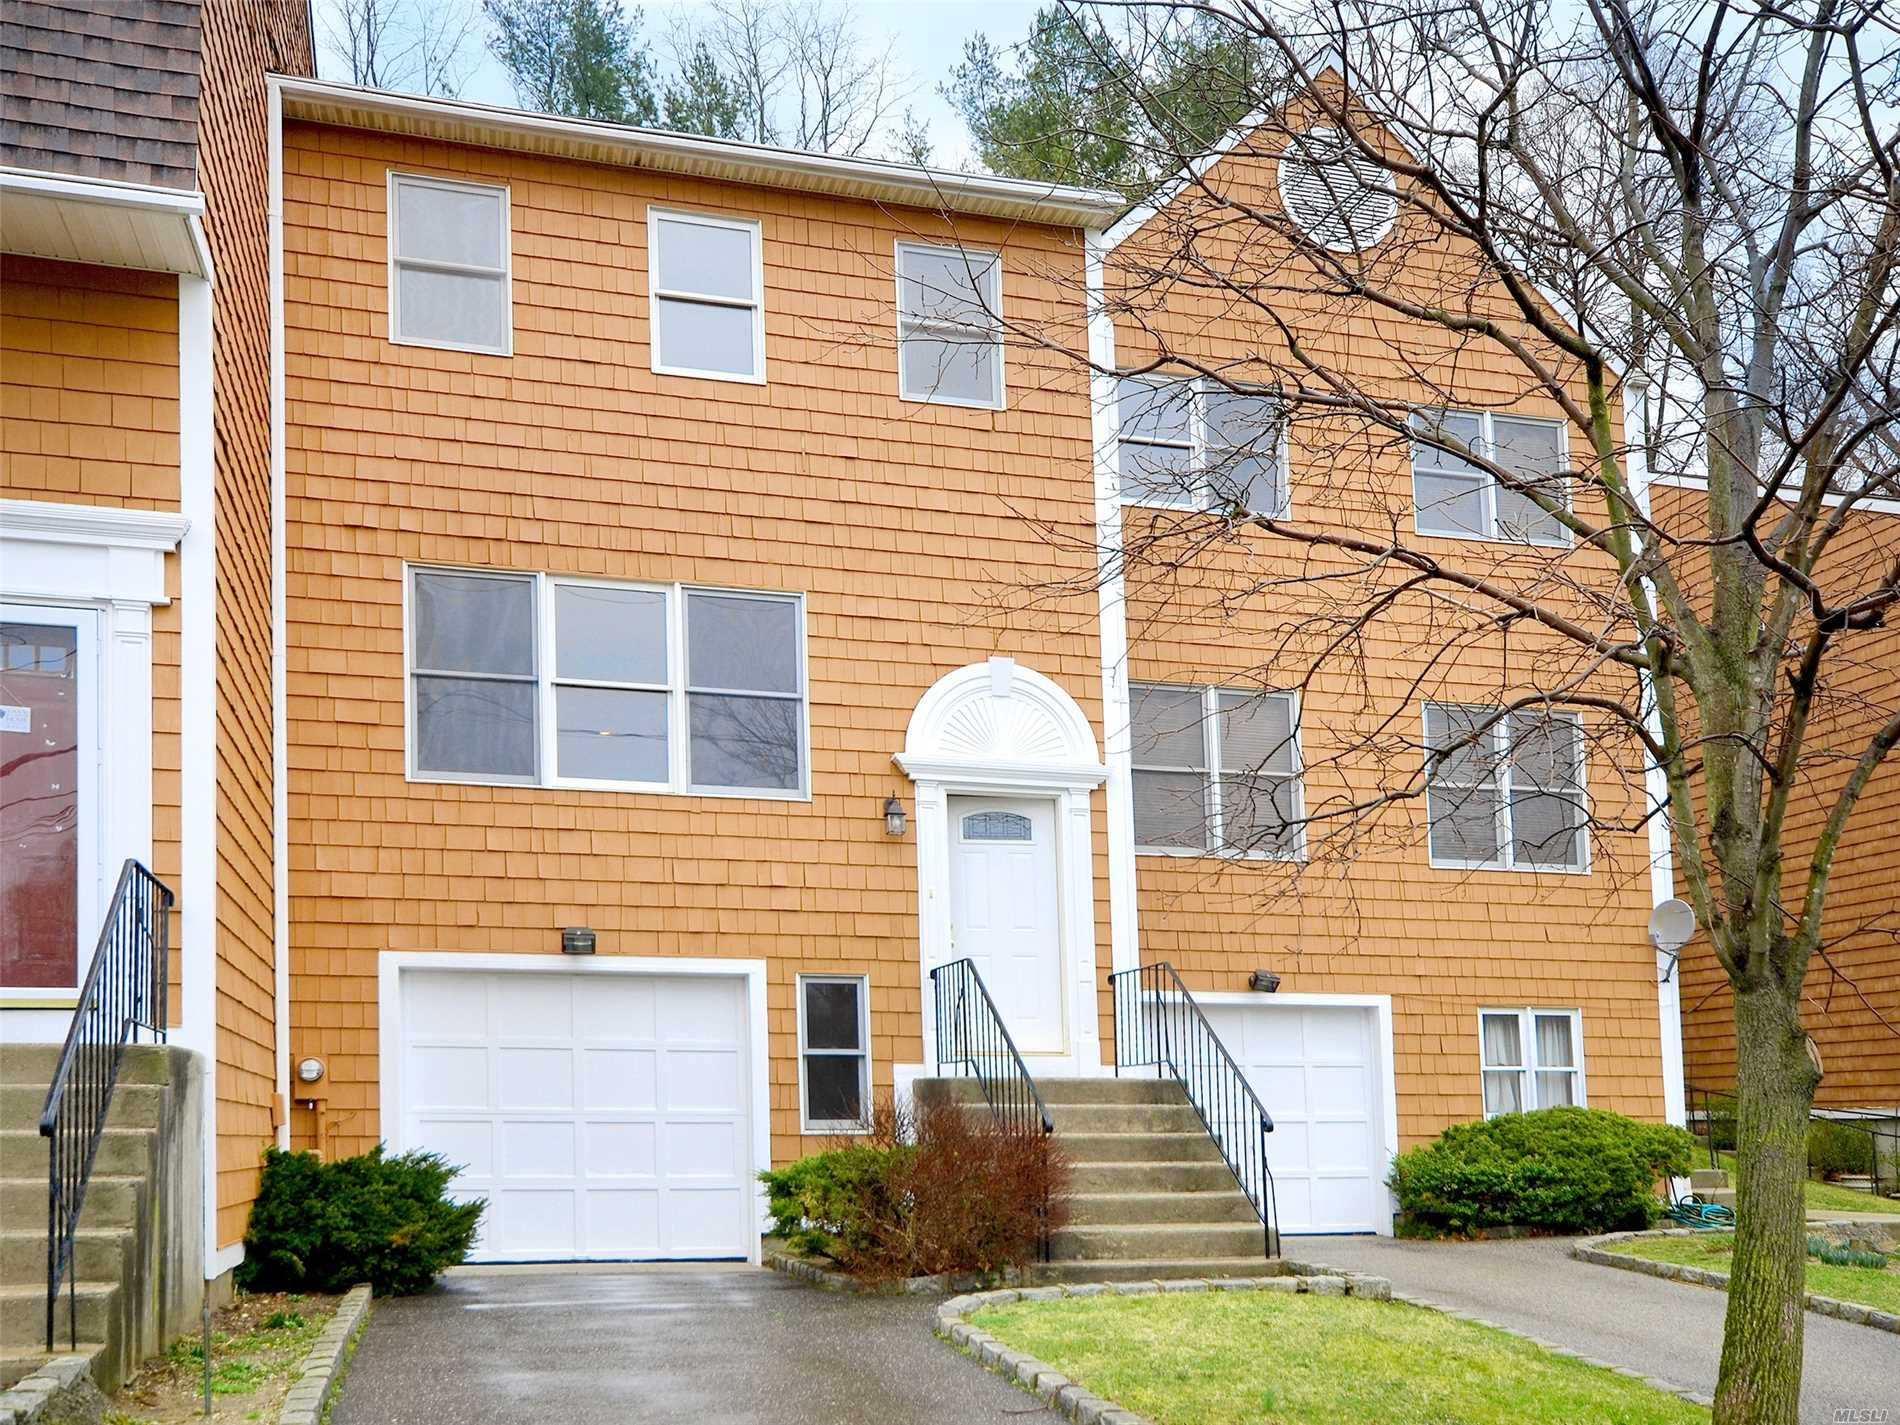 Lovely Sundrenched Townhouse Across From Pond And Park. Spacious Open Flow With Large Rooms. Basement, Storage And One Car Garage. What A Find!!